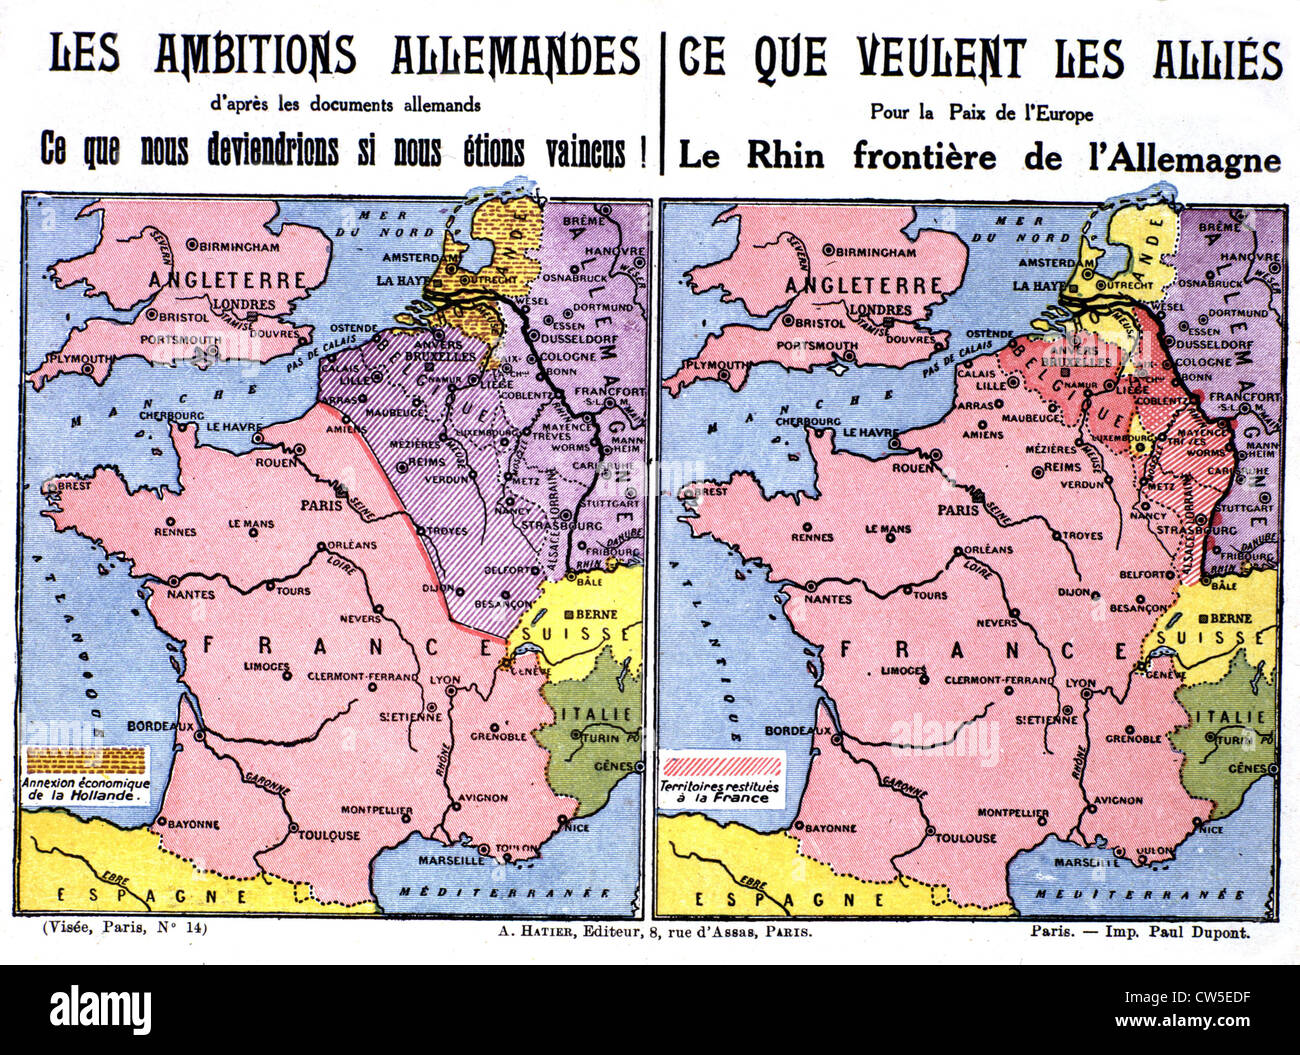 World War I. Postcard printed by the Ligue des patriotes: maps showing German ambitions (1915) - Stock Image